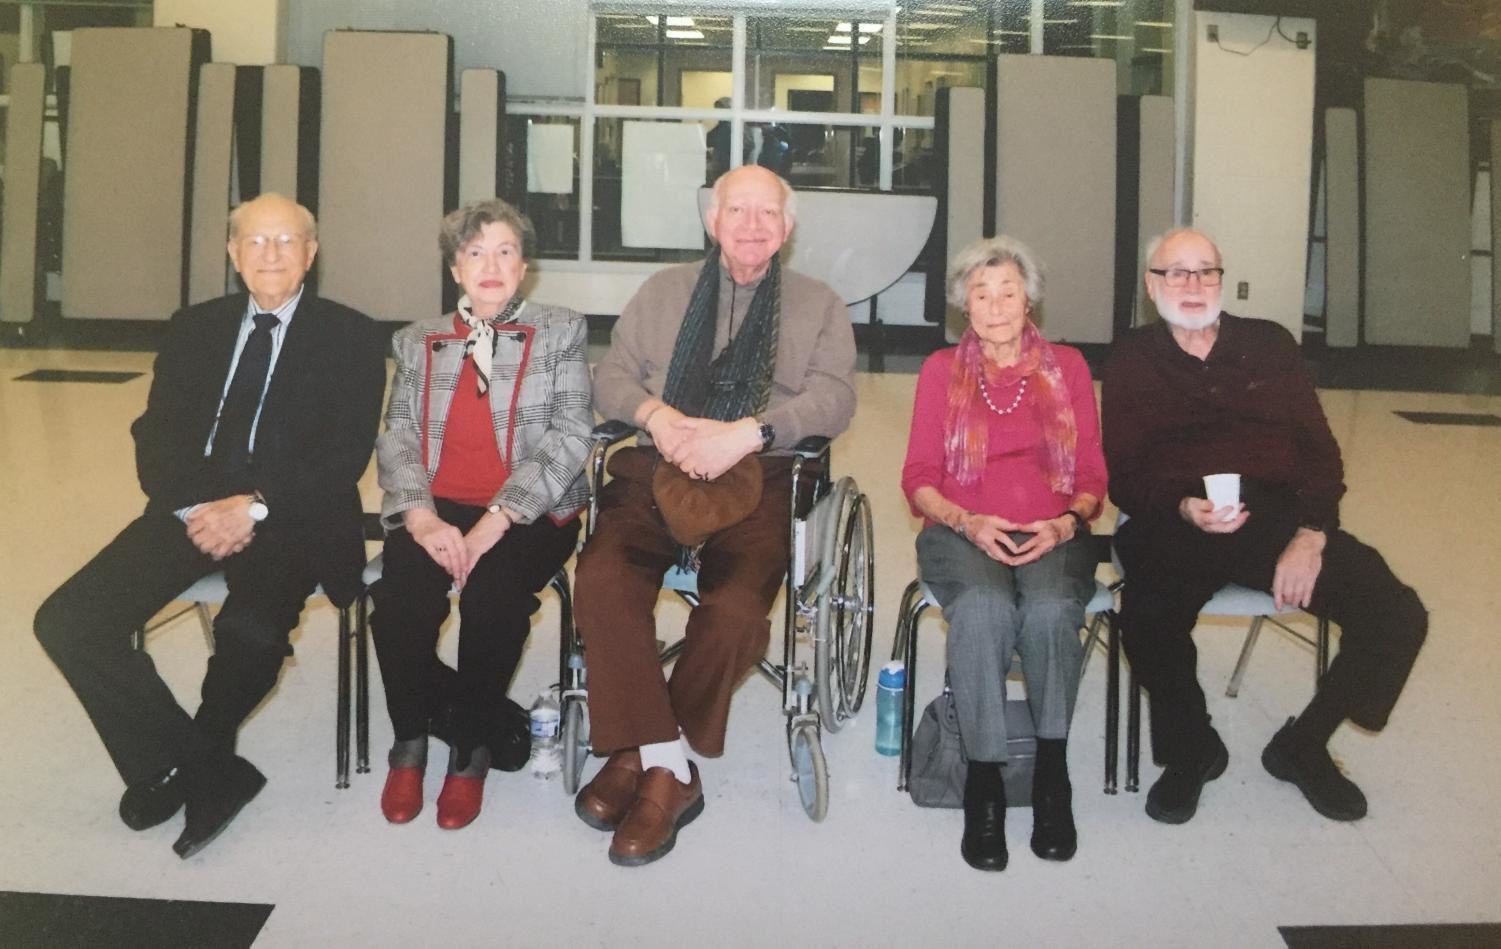 Holocaust Survivors visit DHS for Adopt-A-Survivor Event